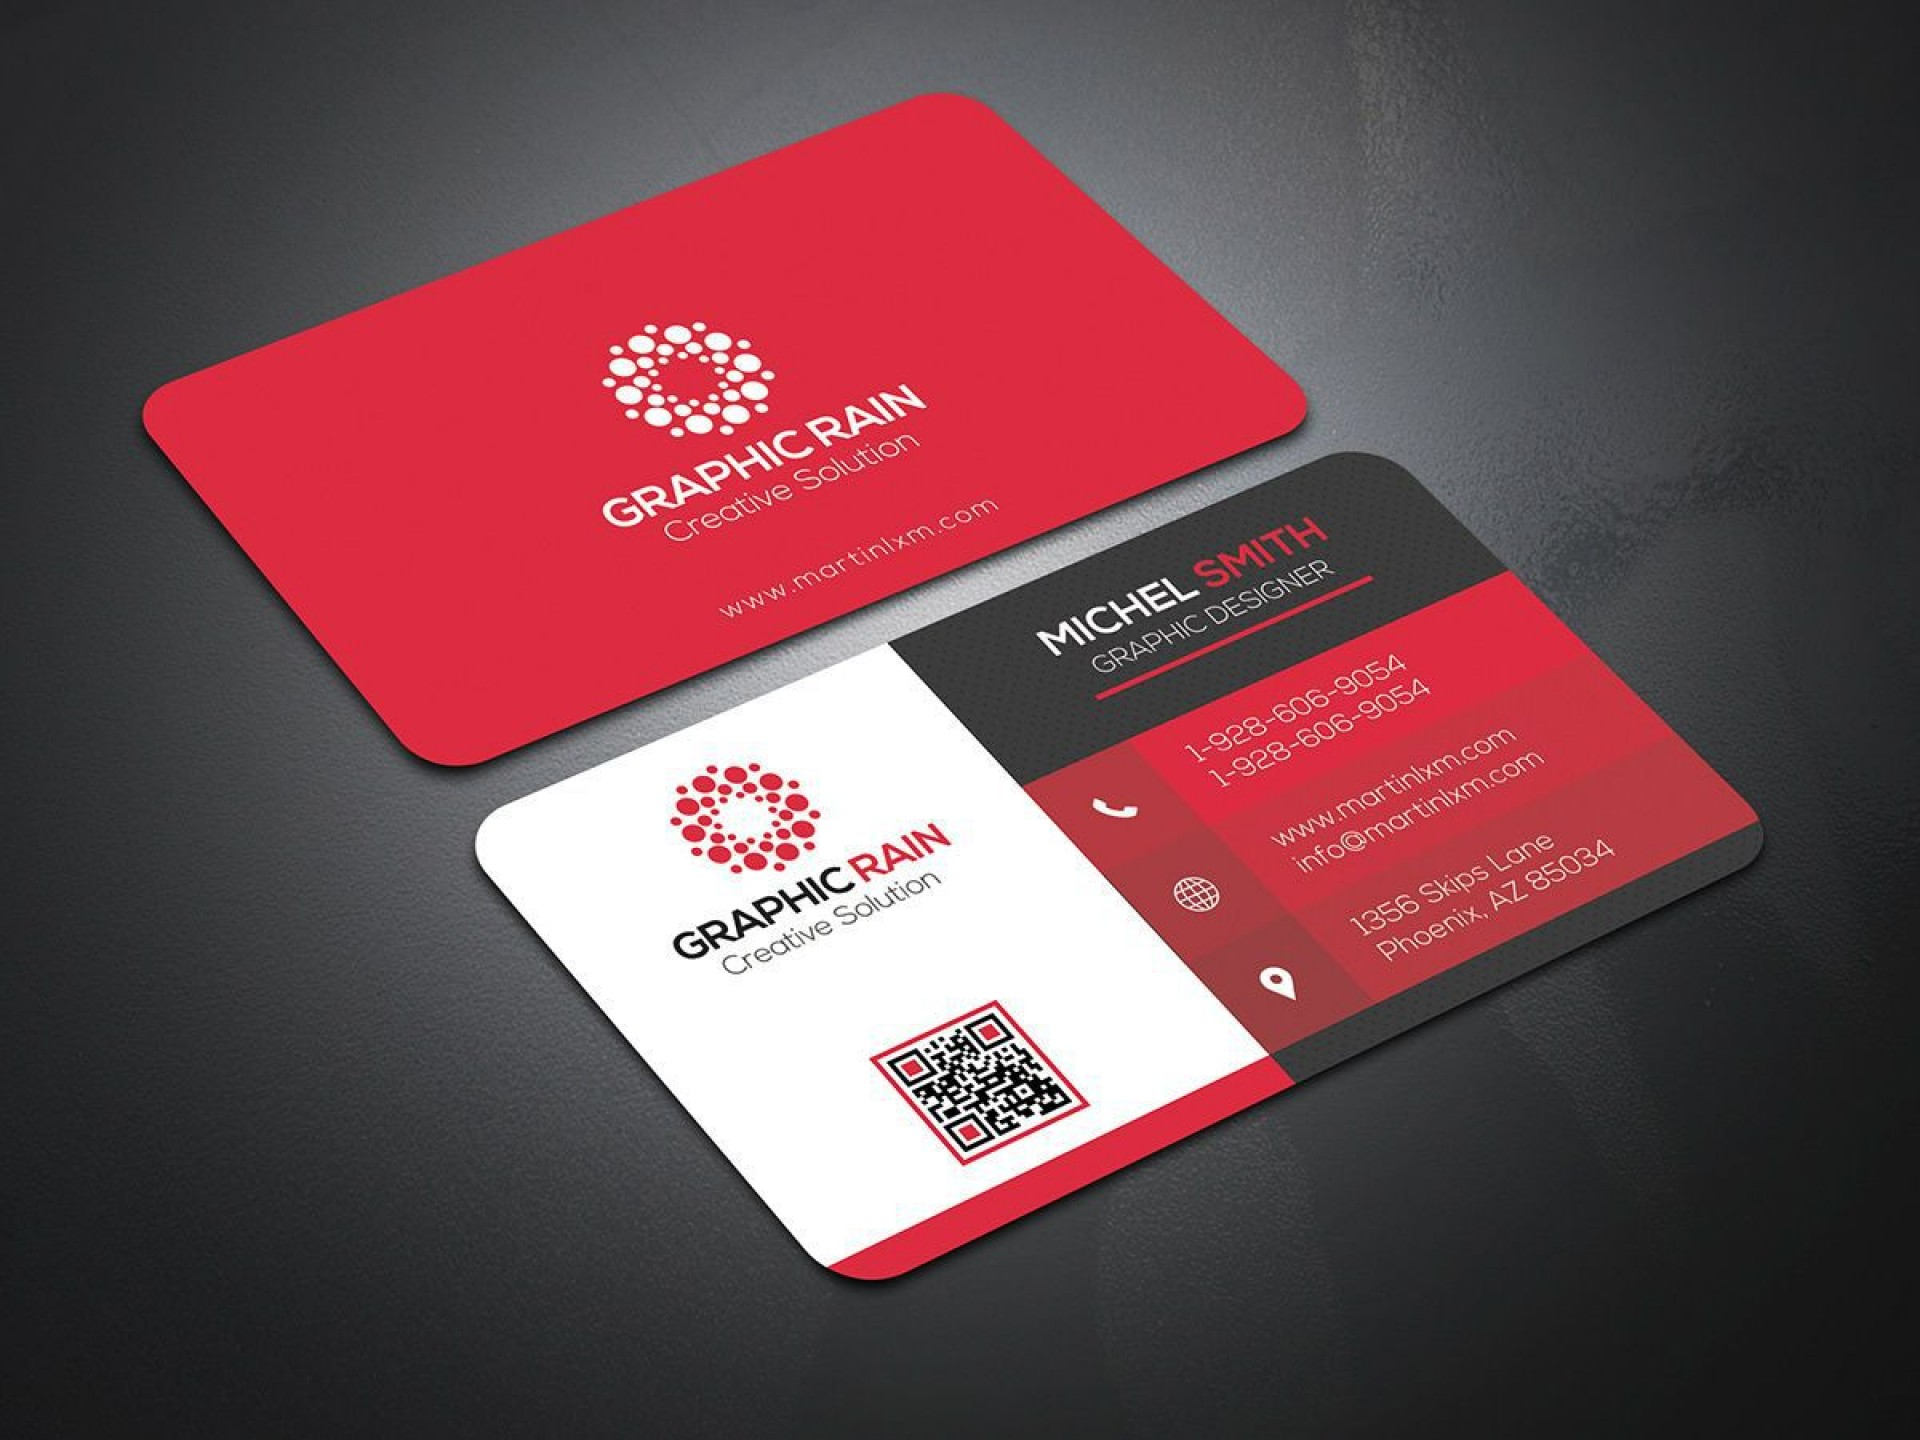 004 Impressive Psd Busines Card Template Highest Quality  Computer Free With Bleed1920